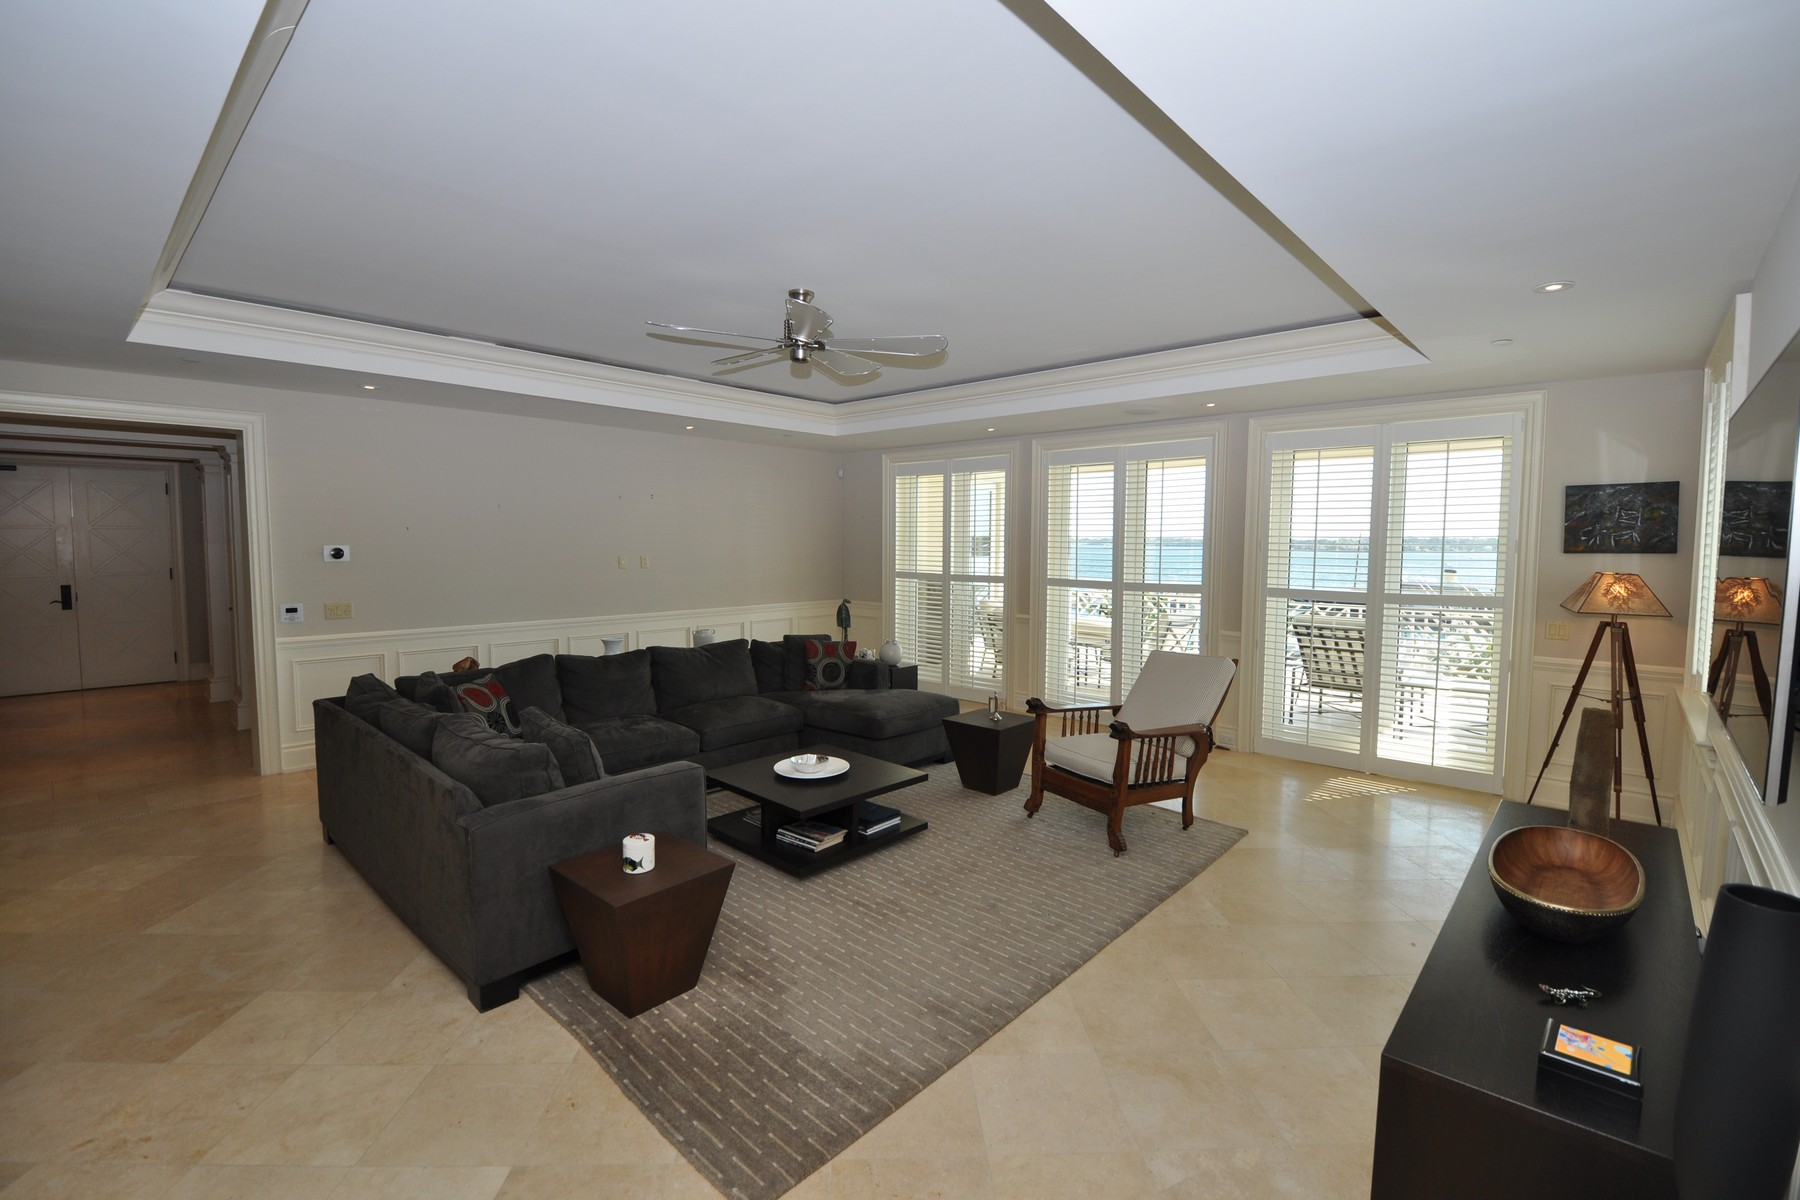 Additional photo for property listing at Ocean Club Residences & Marina C3.4 Ocean Club Residences And Marina, 天堂岛, 新普罗维登斯/拿骚 巴哈马